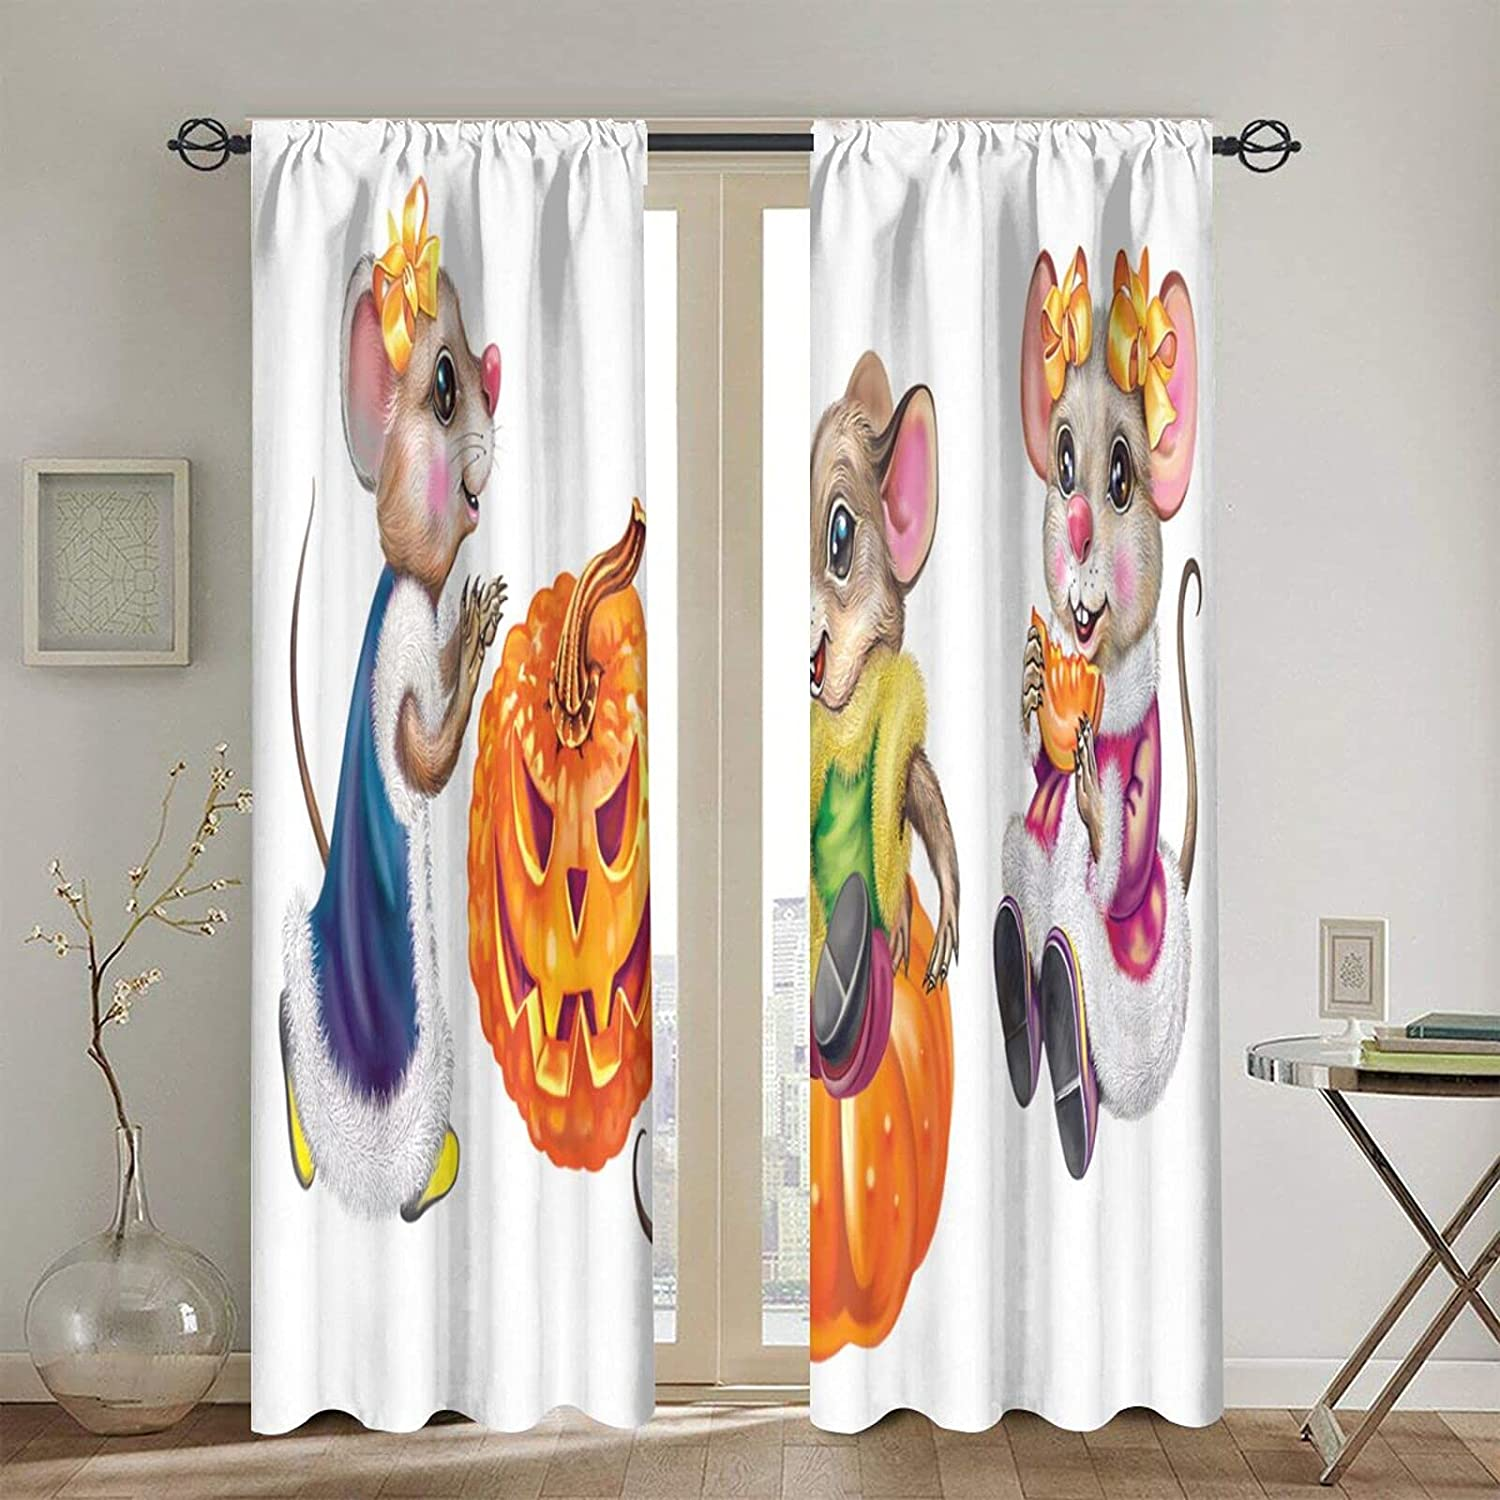 Blackout Curtains for Girls Boys Celebration Halloween Funny Gifts Super beauty product restock quality top Mou